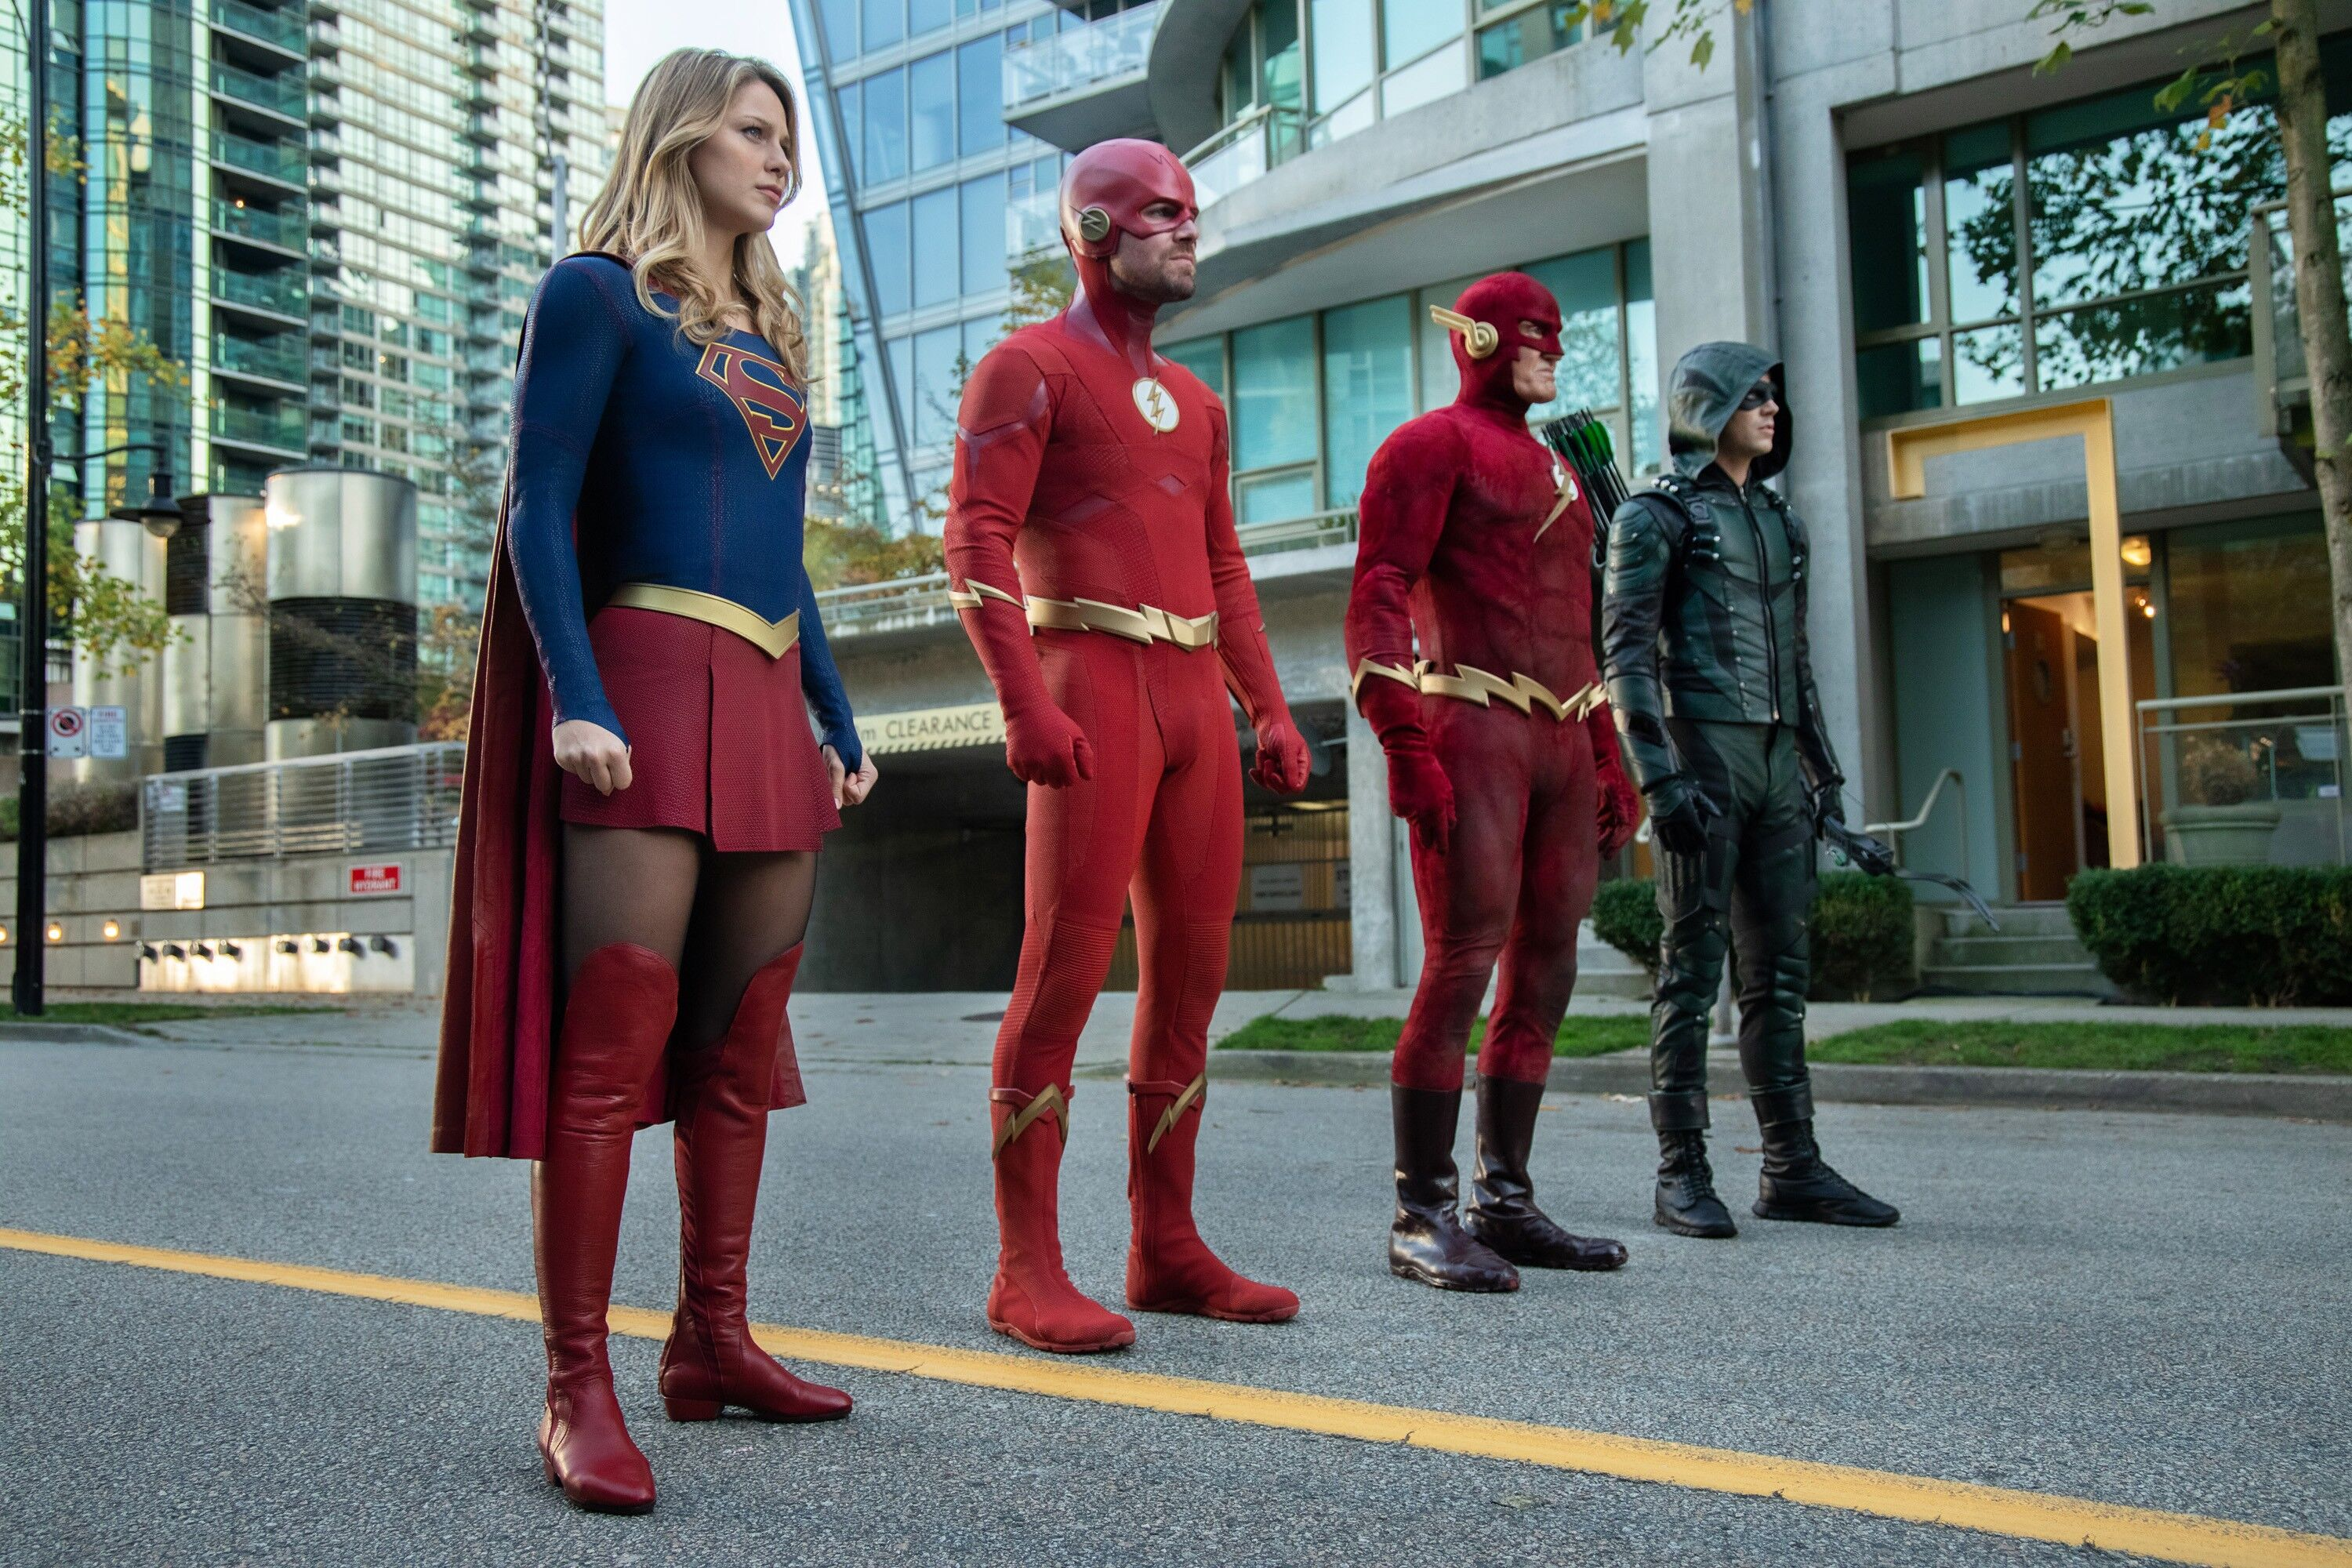 Elseworlds review: The Arrowverse is at its best during the crossover